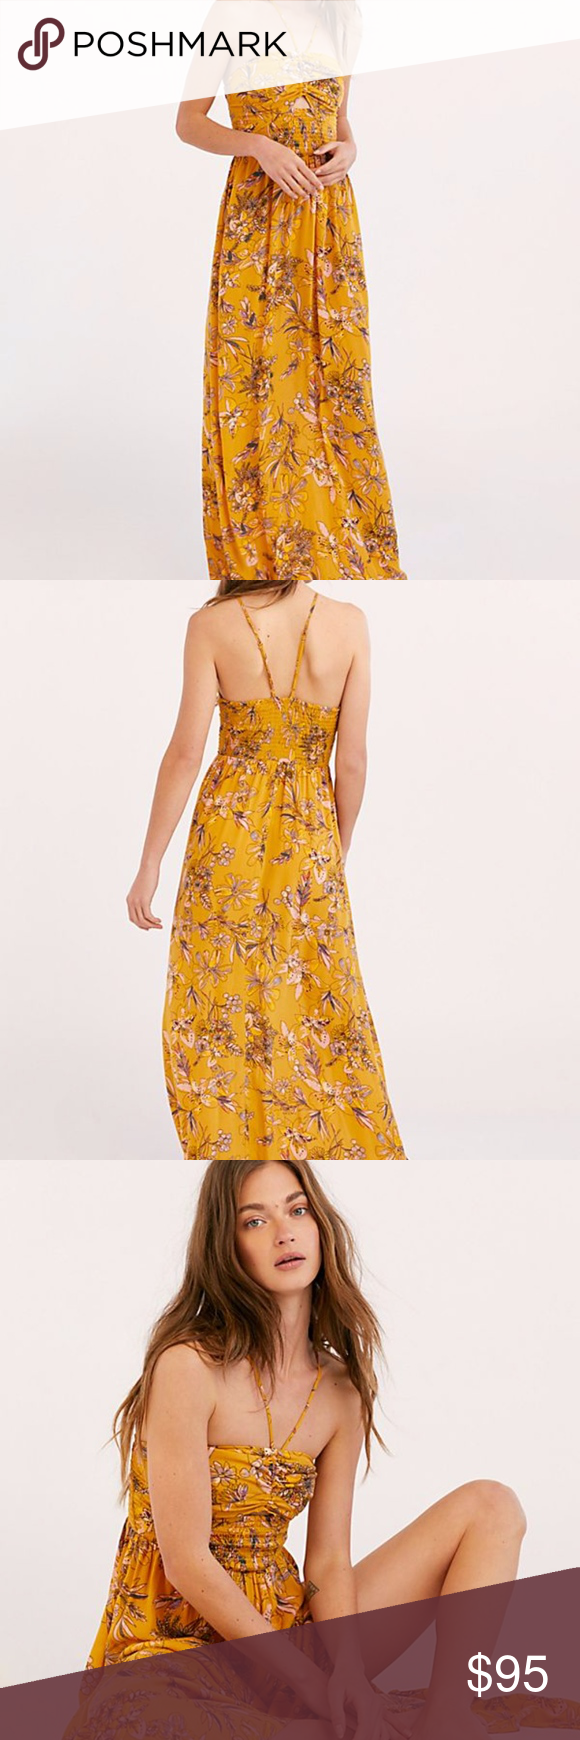 64888e173436 NWOT FREE PEOPLE ONE STEP AHEAD MAXI DRESS Details Style No. 50054428 ;  Color Code